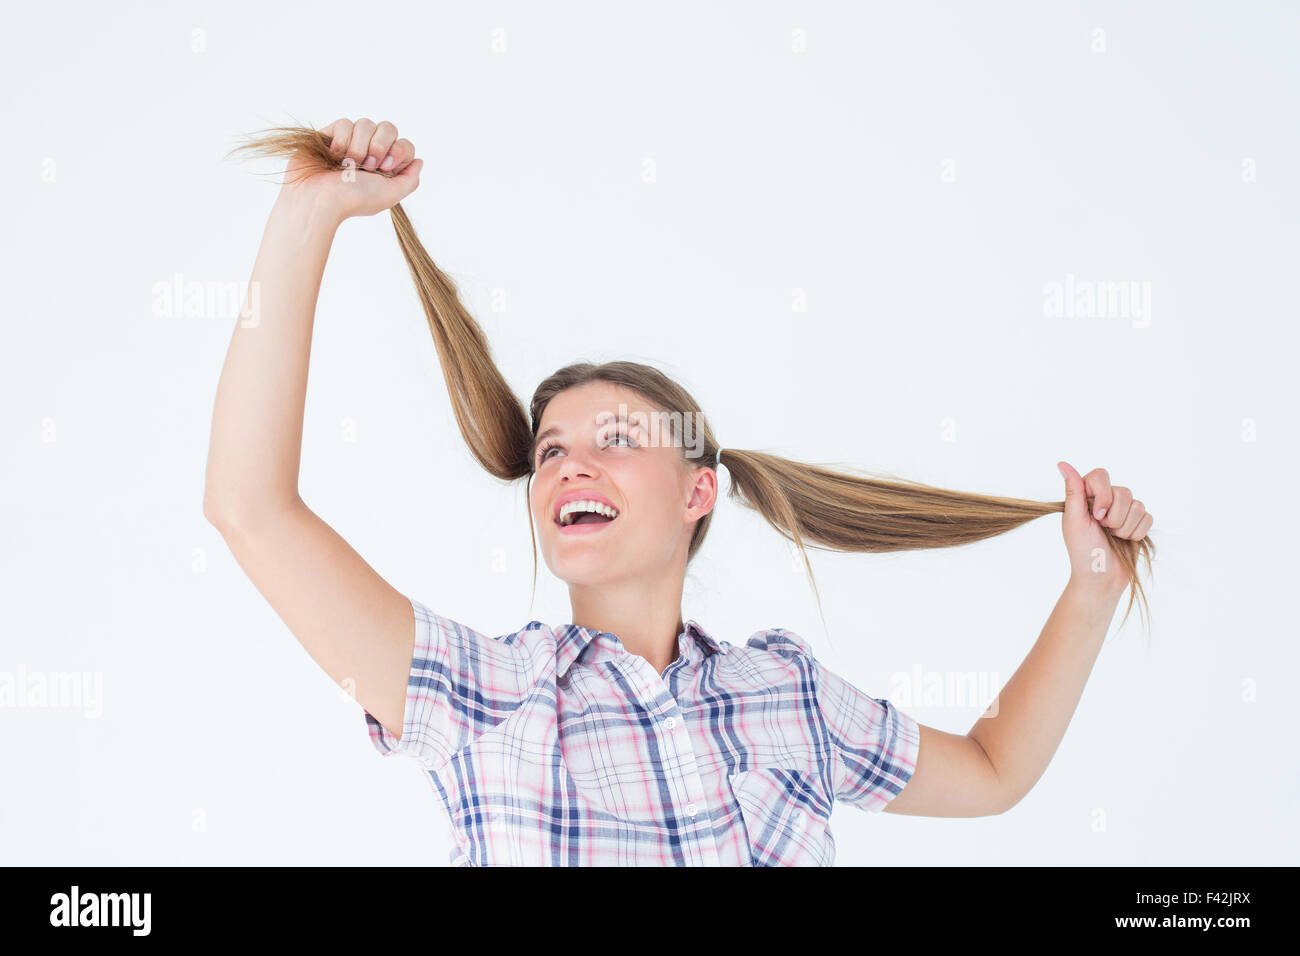 Geeky hipster holding her pigtails - Stock Image